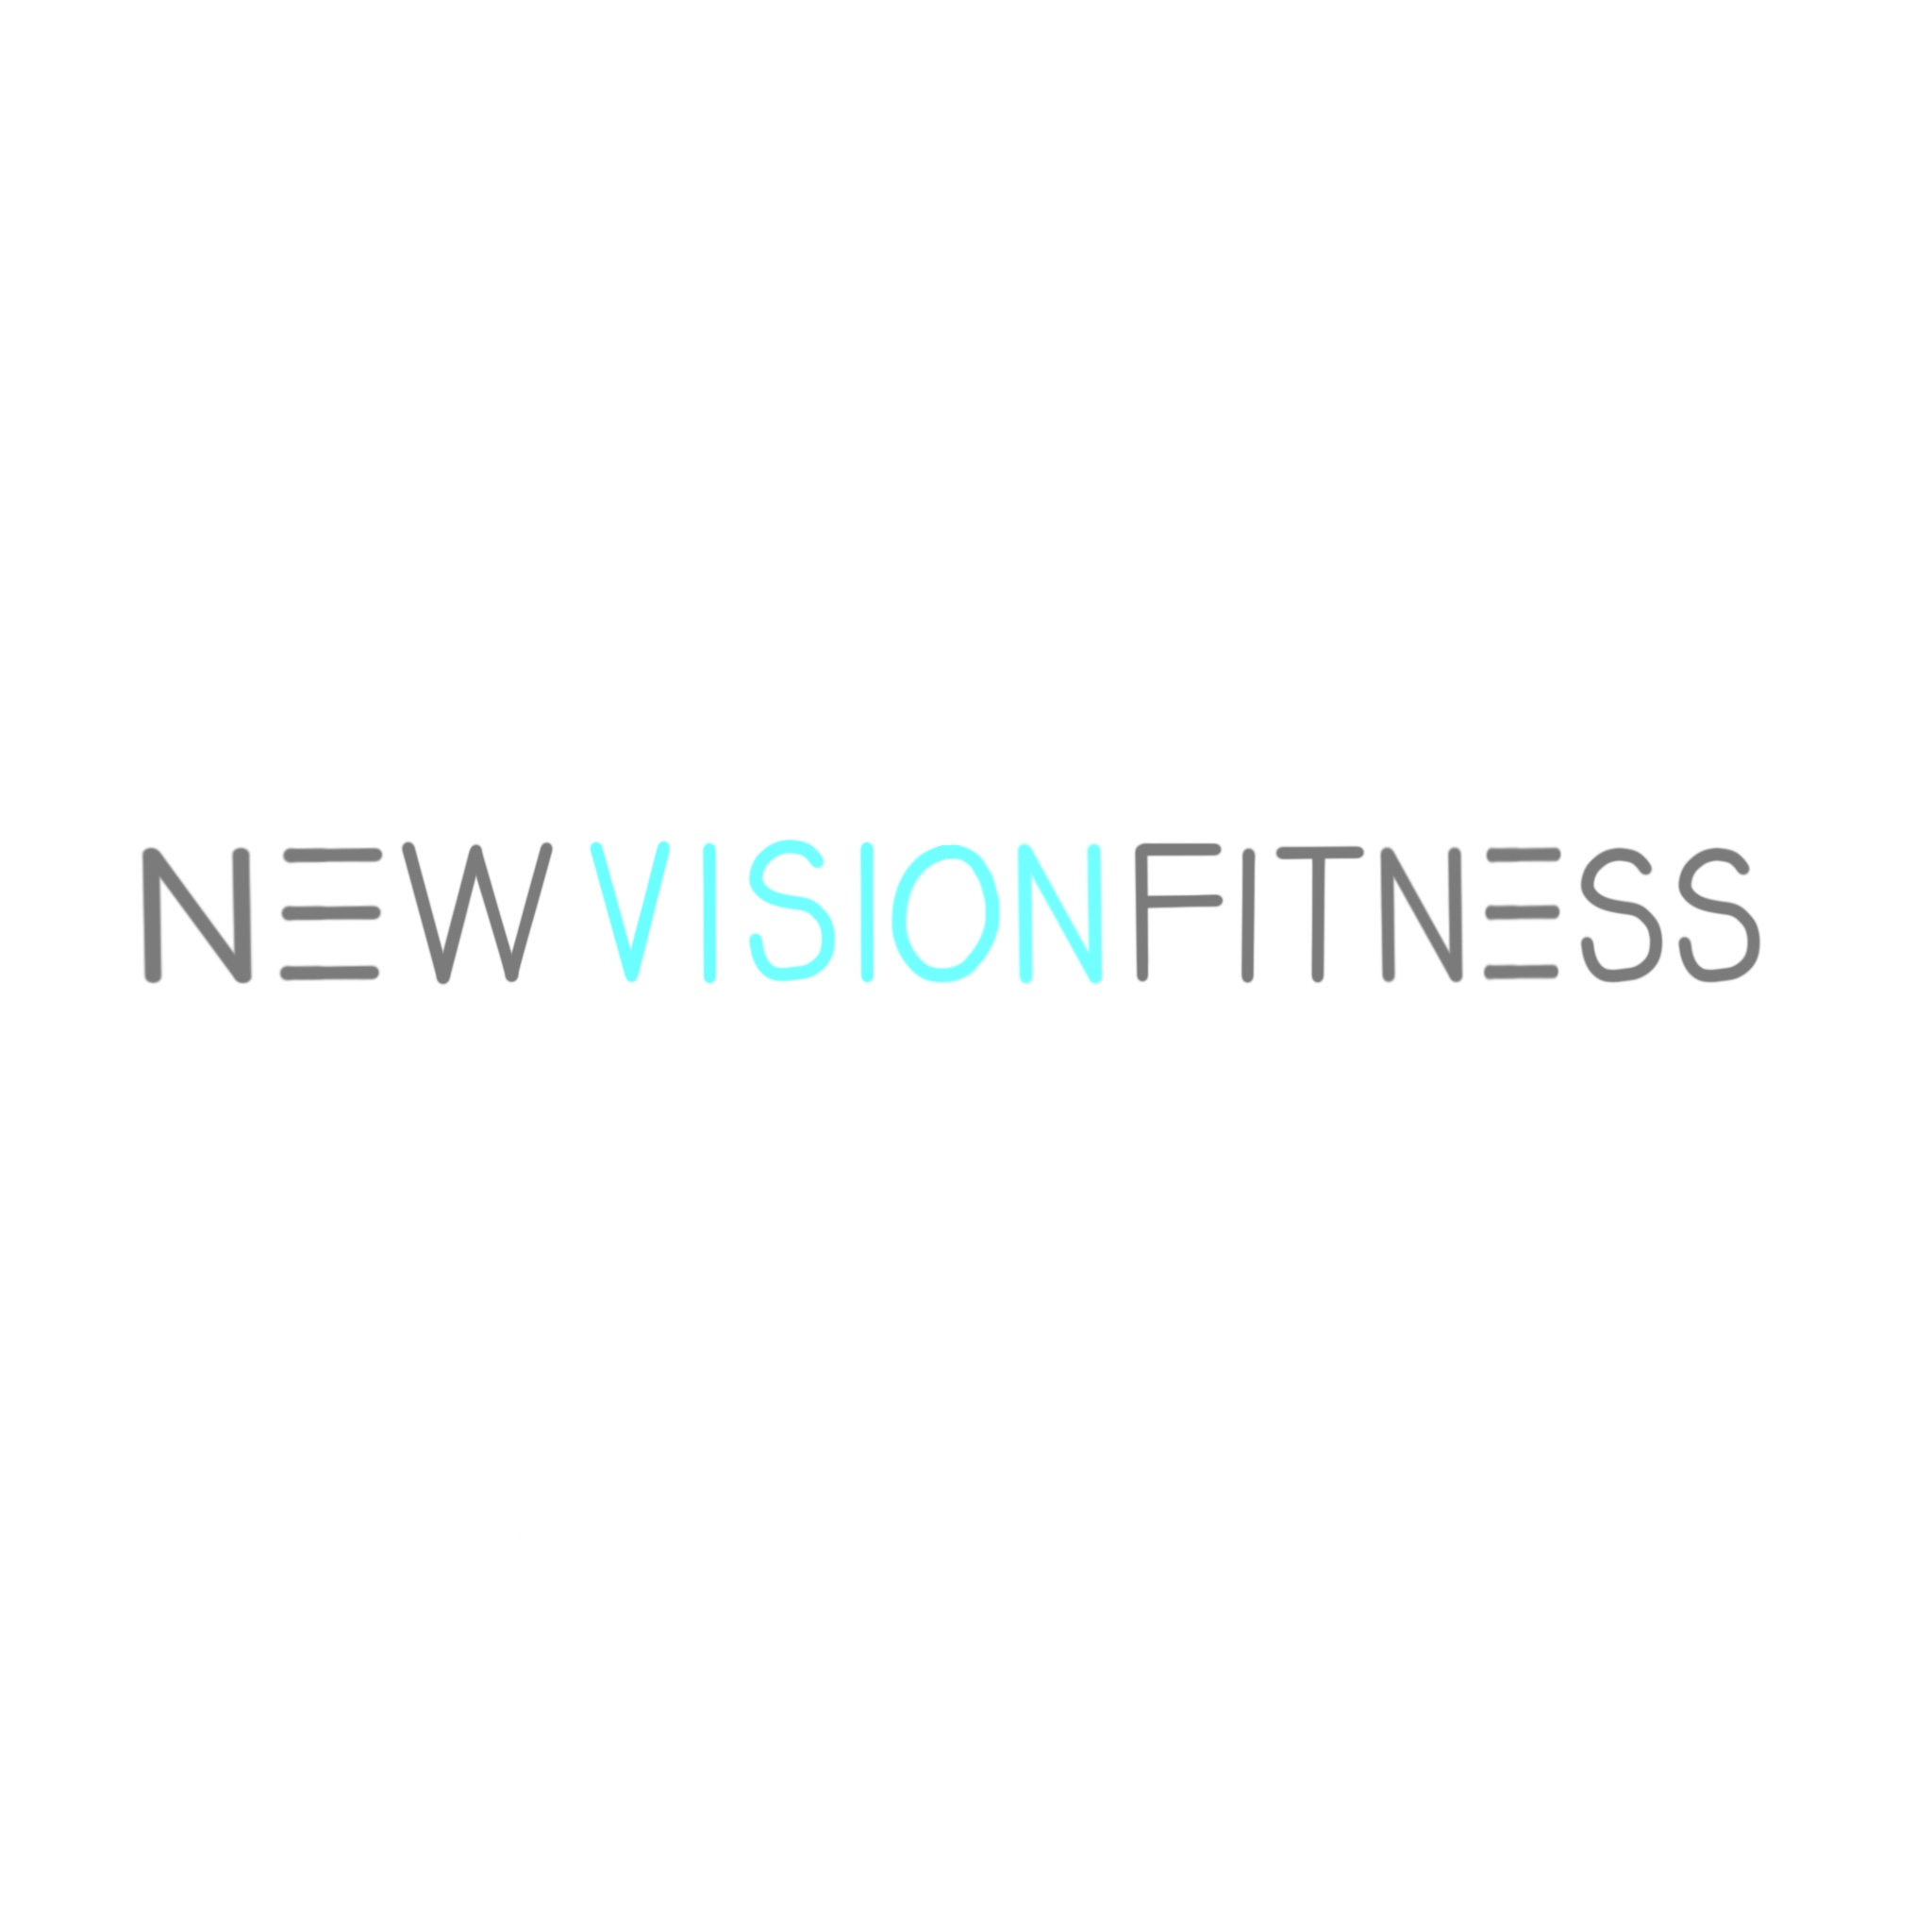 New Vision Fitness 2